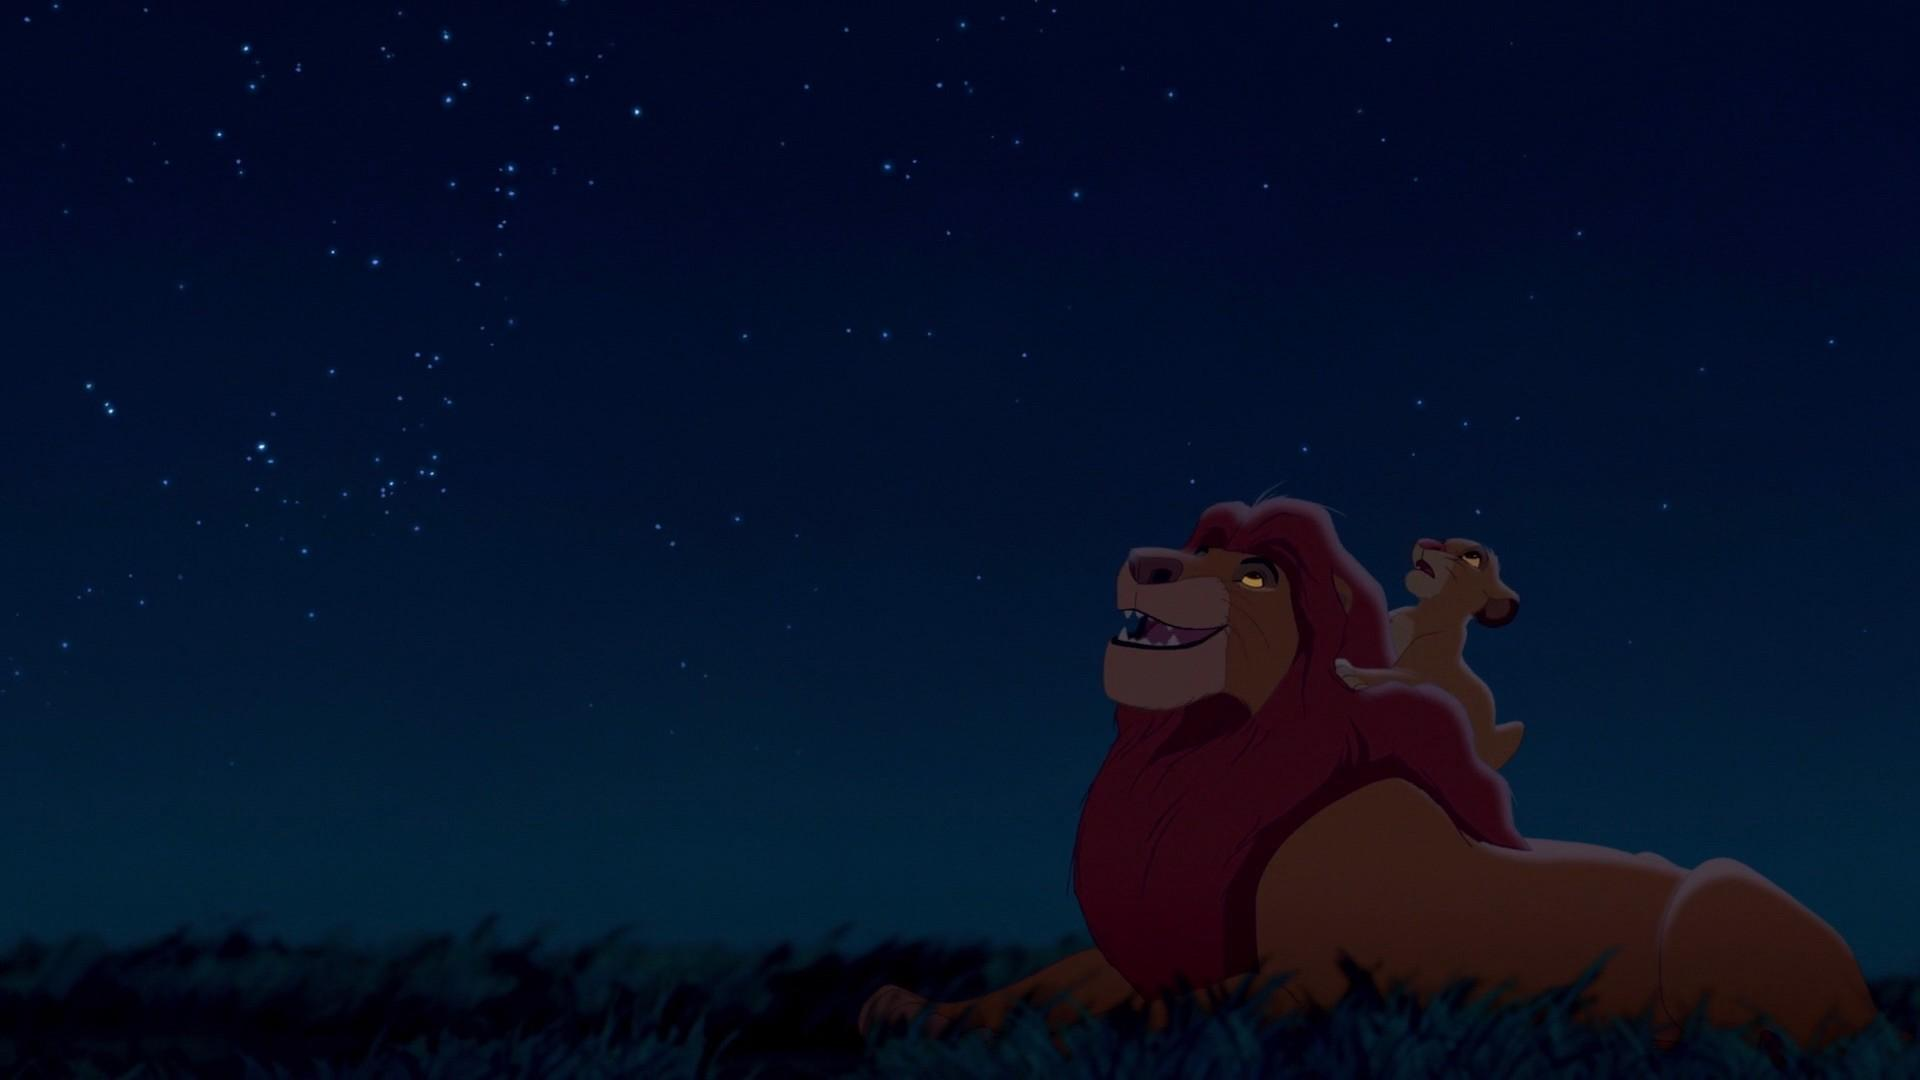 Simba And Mufasa The Lion King Wallpapers Wallpaper Cave